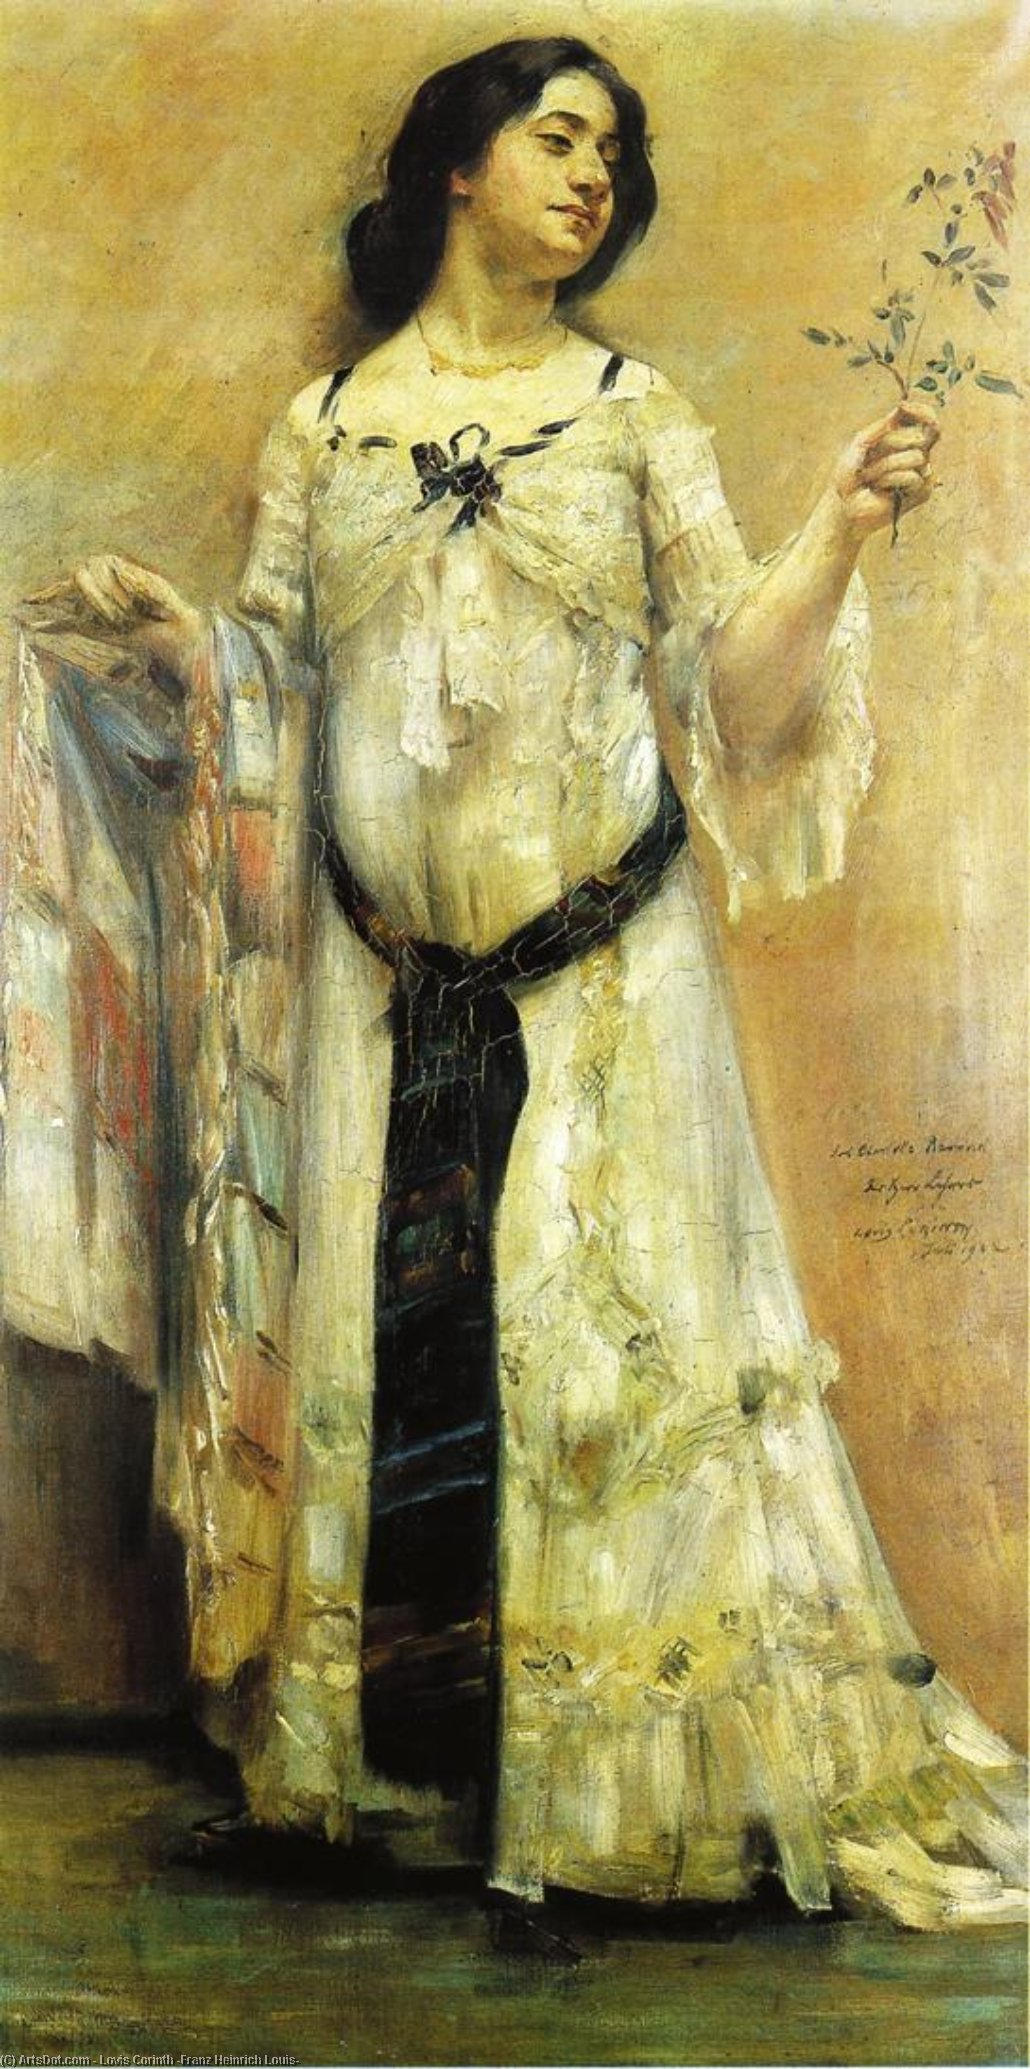 Portrait of Charlotte Berend in a White Dress, Oil On Canvas by Lovis Corinth (Franz Heinrich Louis) (1858-1925, Netherlands)